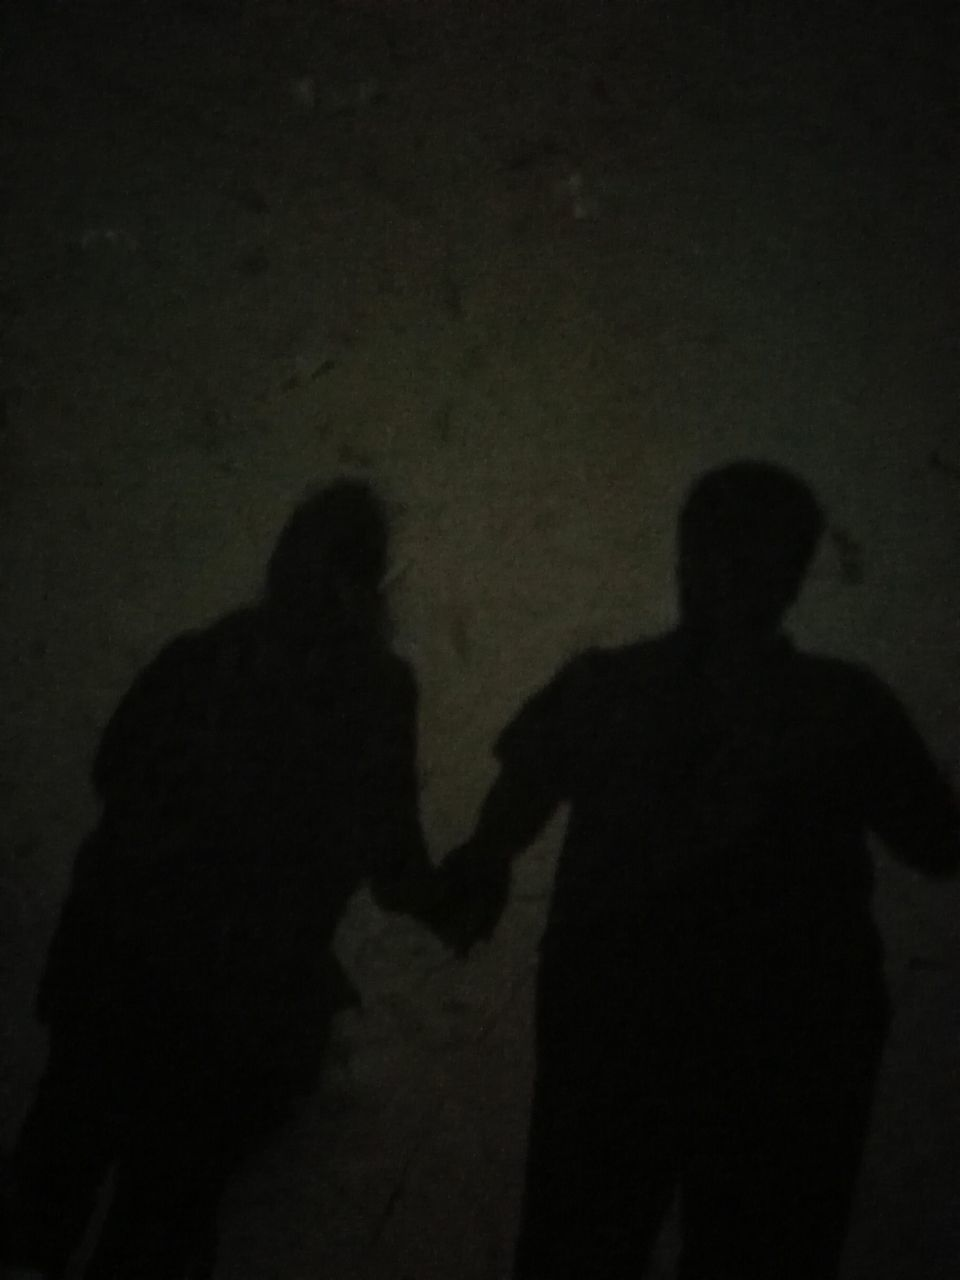 shadow, silhouette, focus on shadow, togetherness, father, men, dark, mystery, real people, love, family with one child, standing, horror, childhood, sunlight, spooky, lifestyles, child, outdoors, people, human body part, adult, halloween